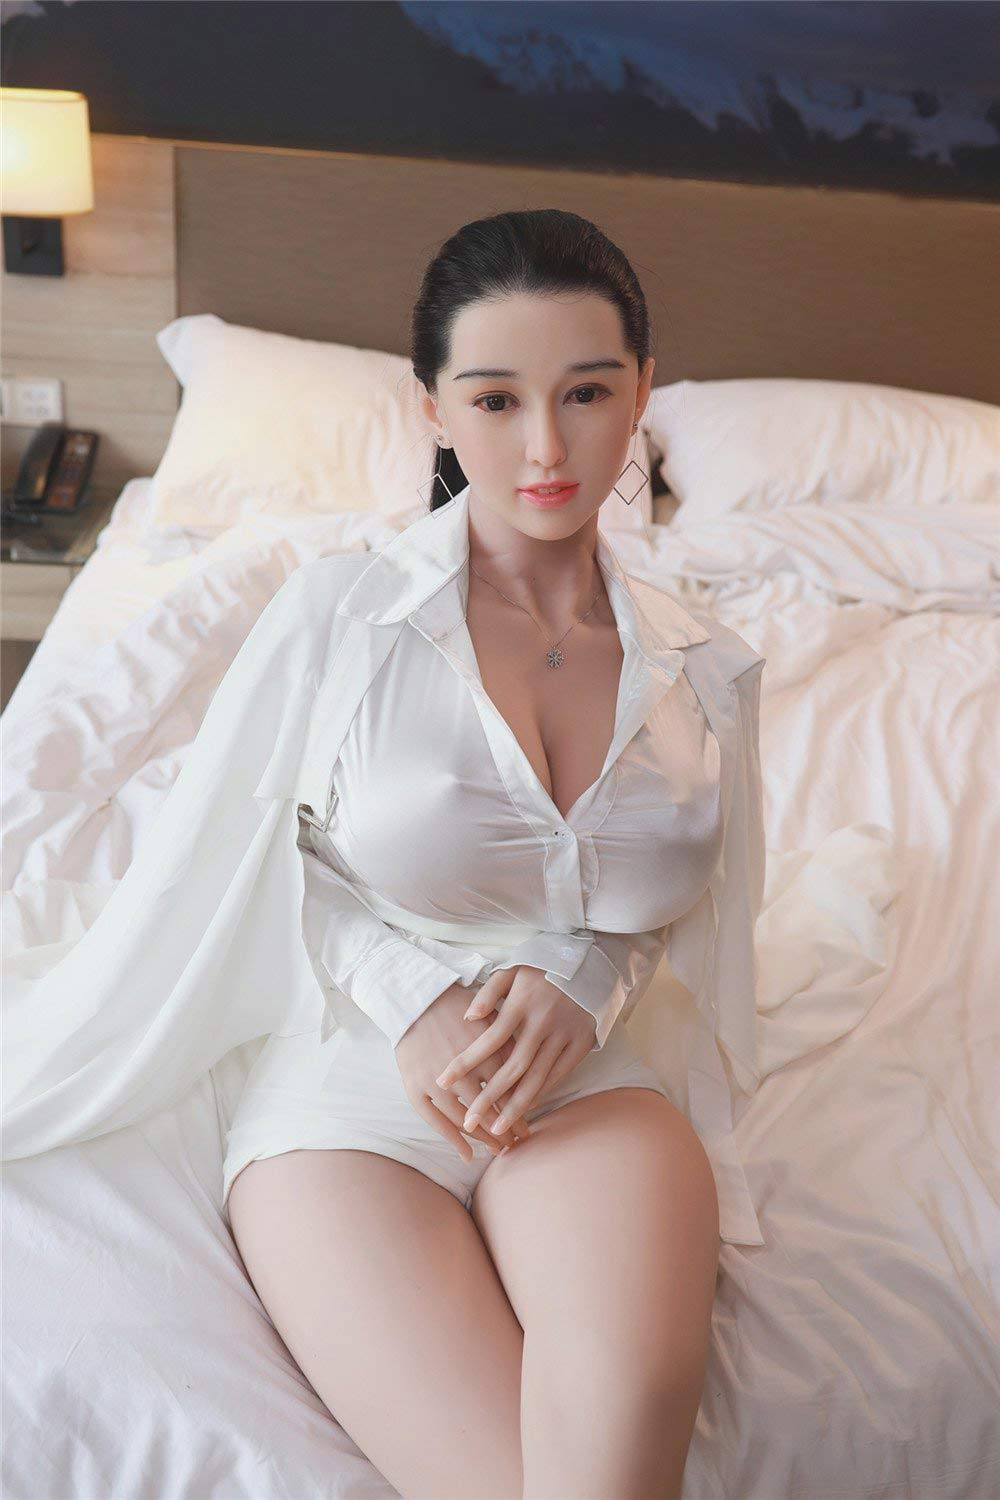 Sex doll in white shirt